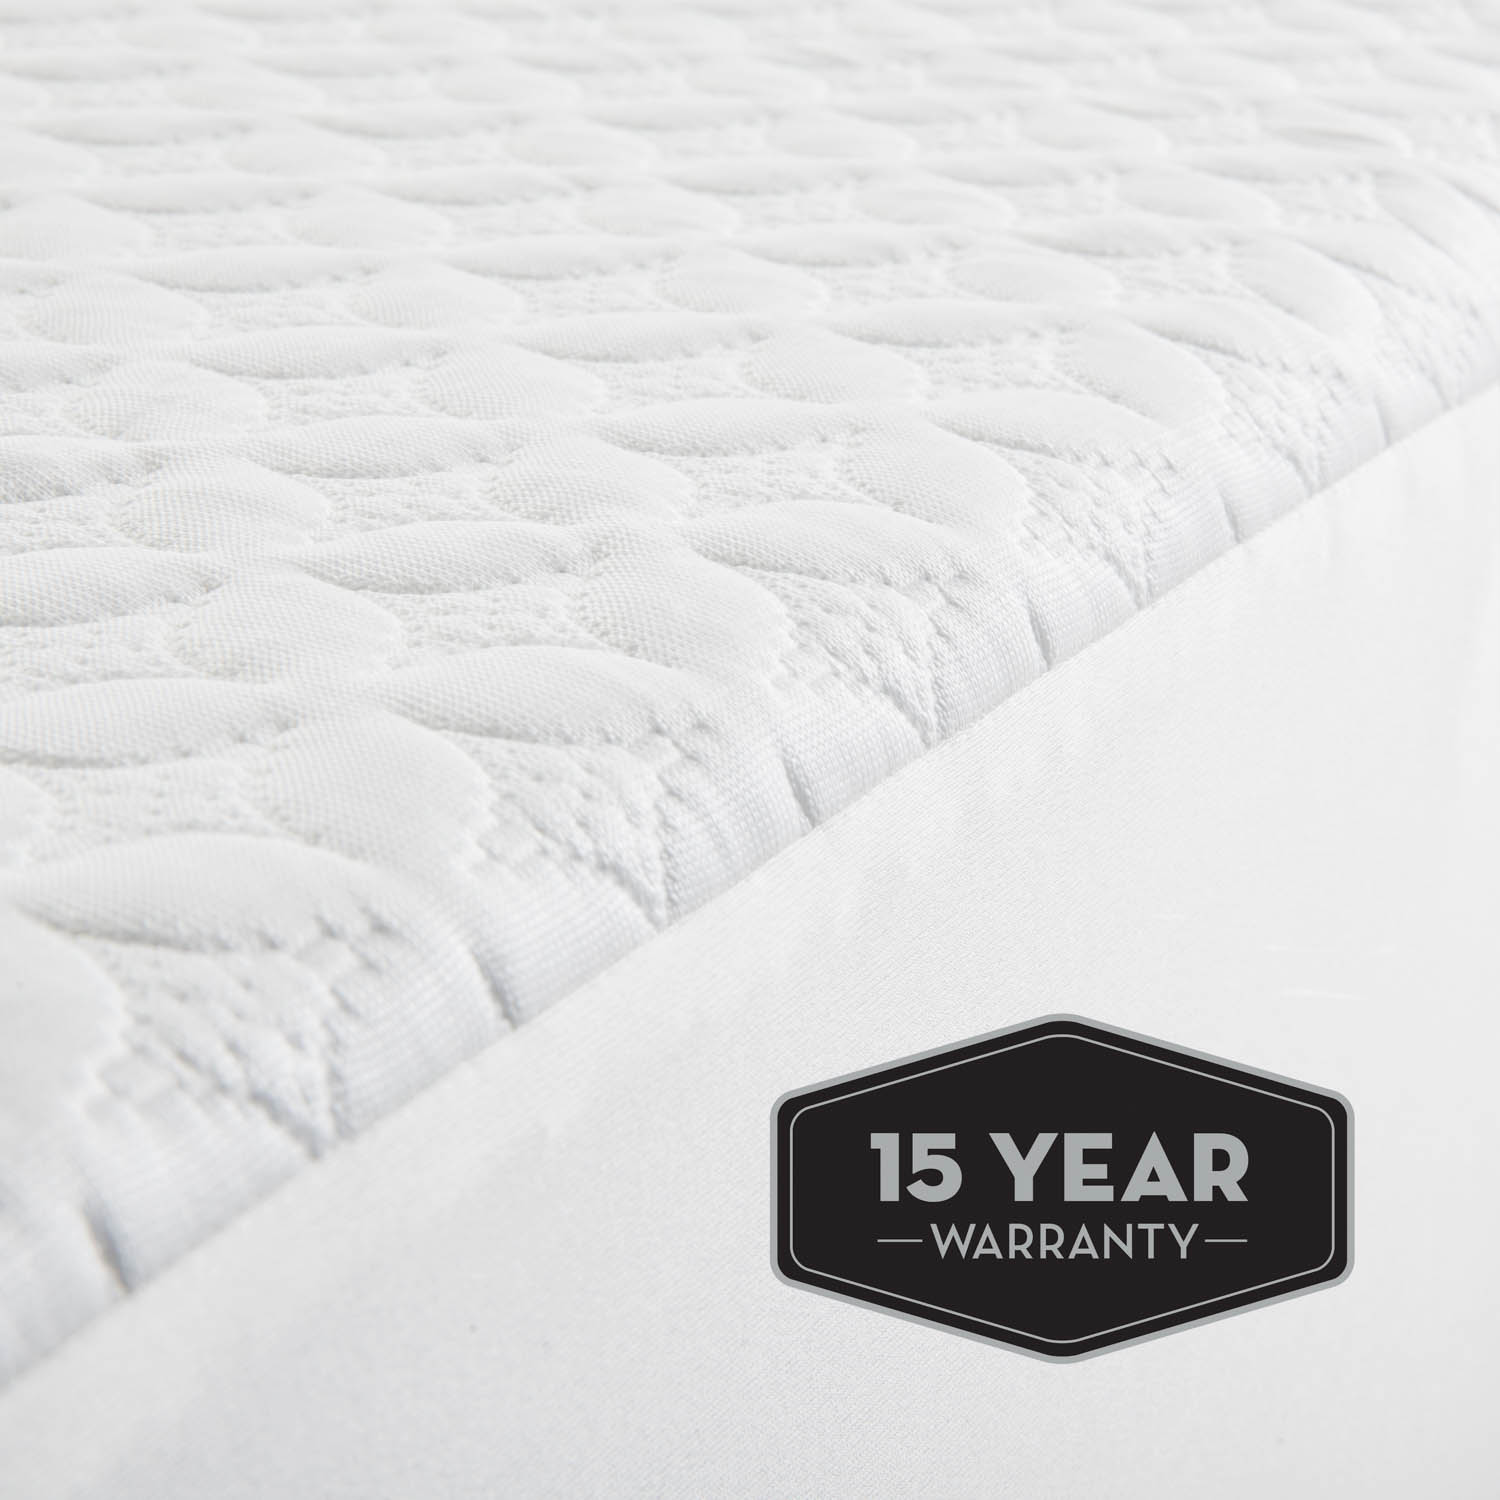 Malouf Sleep Tite Mattress Protector Five 5ided Icetech Mattress Protector By Malouf